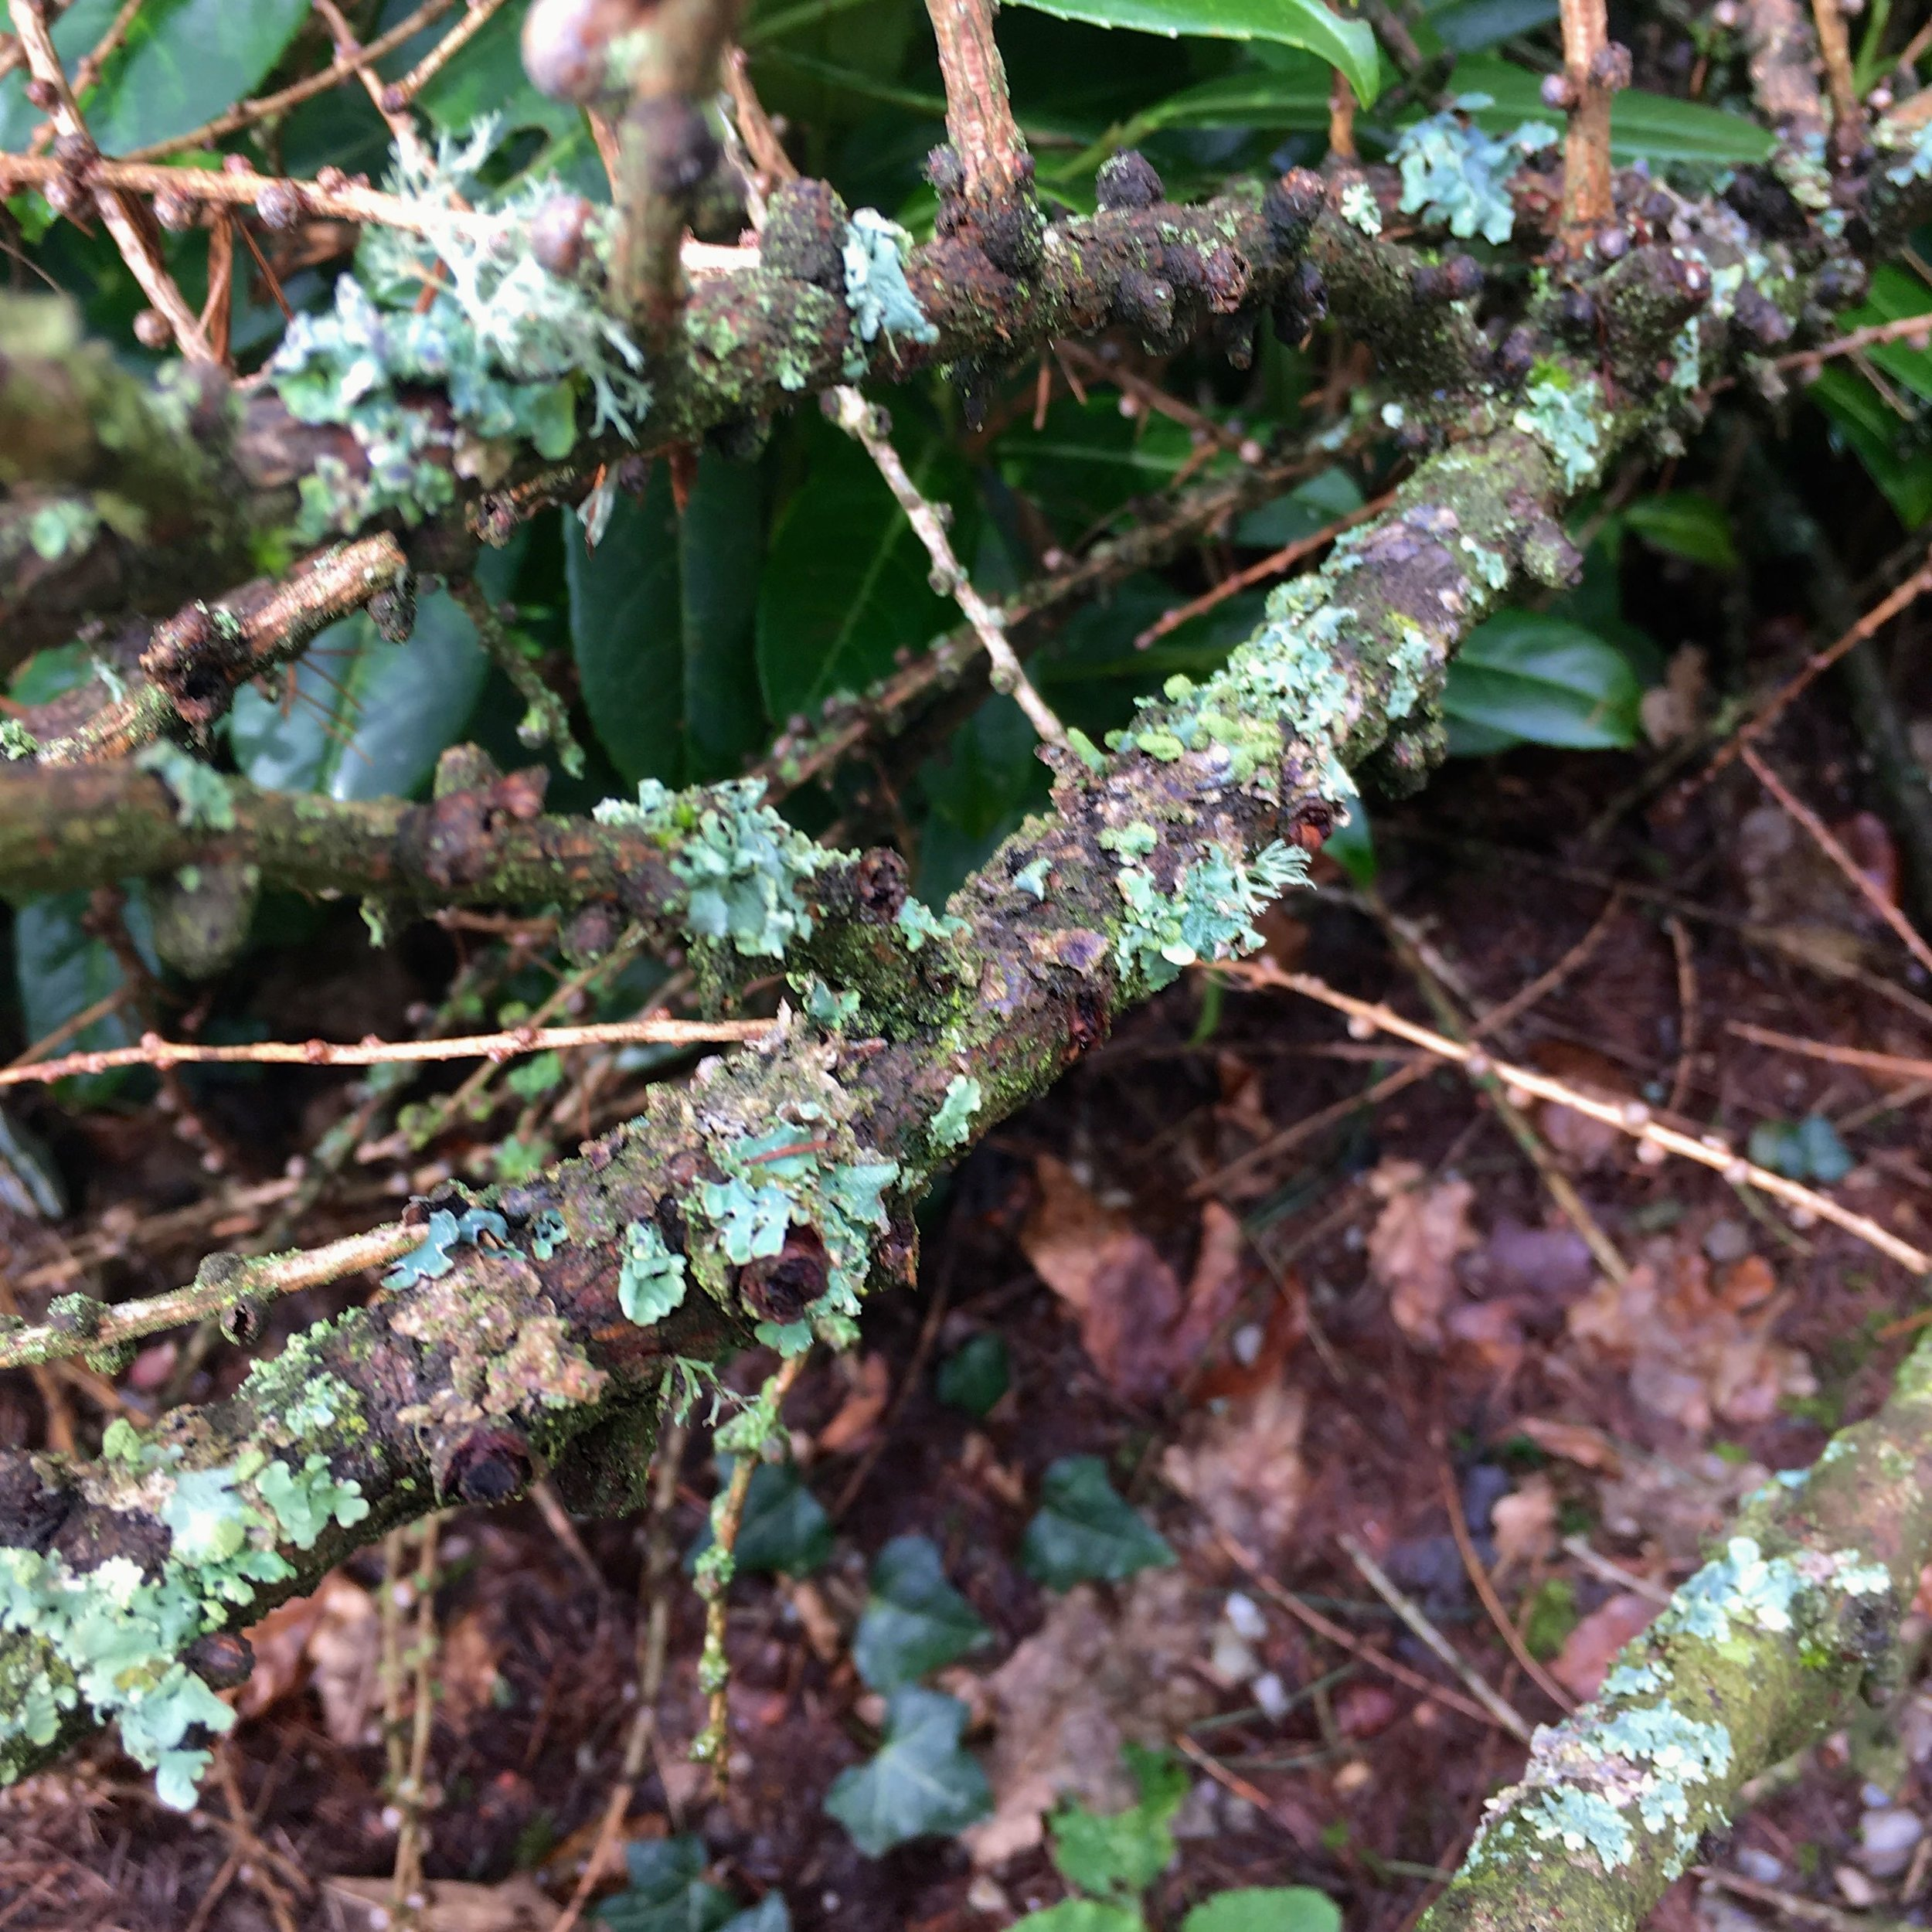 Exploring the grounds and admiring the lichen at Hestercombe